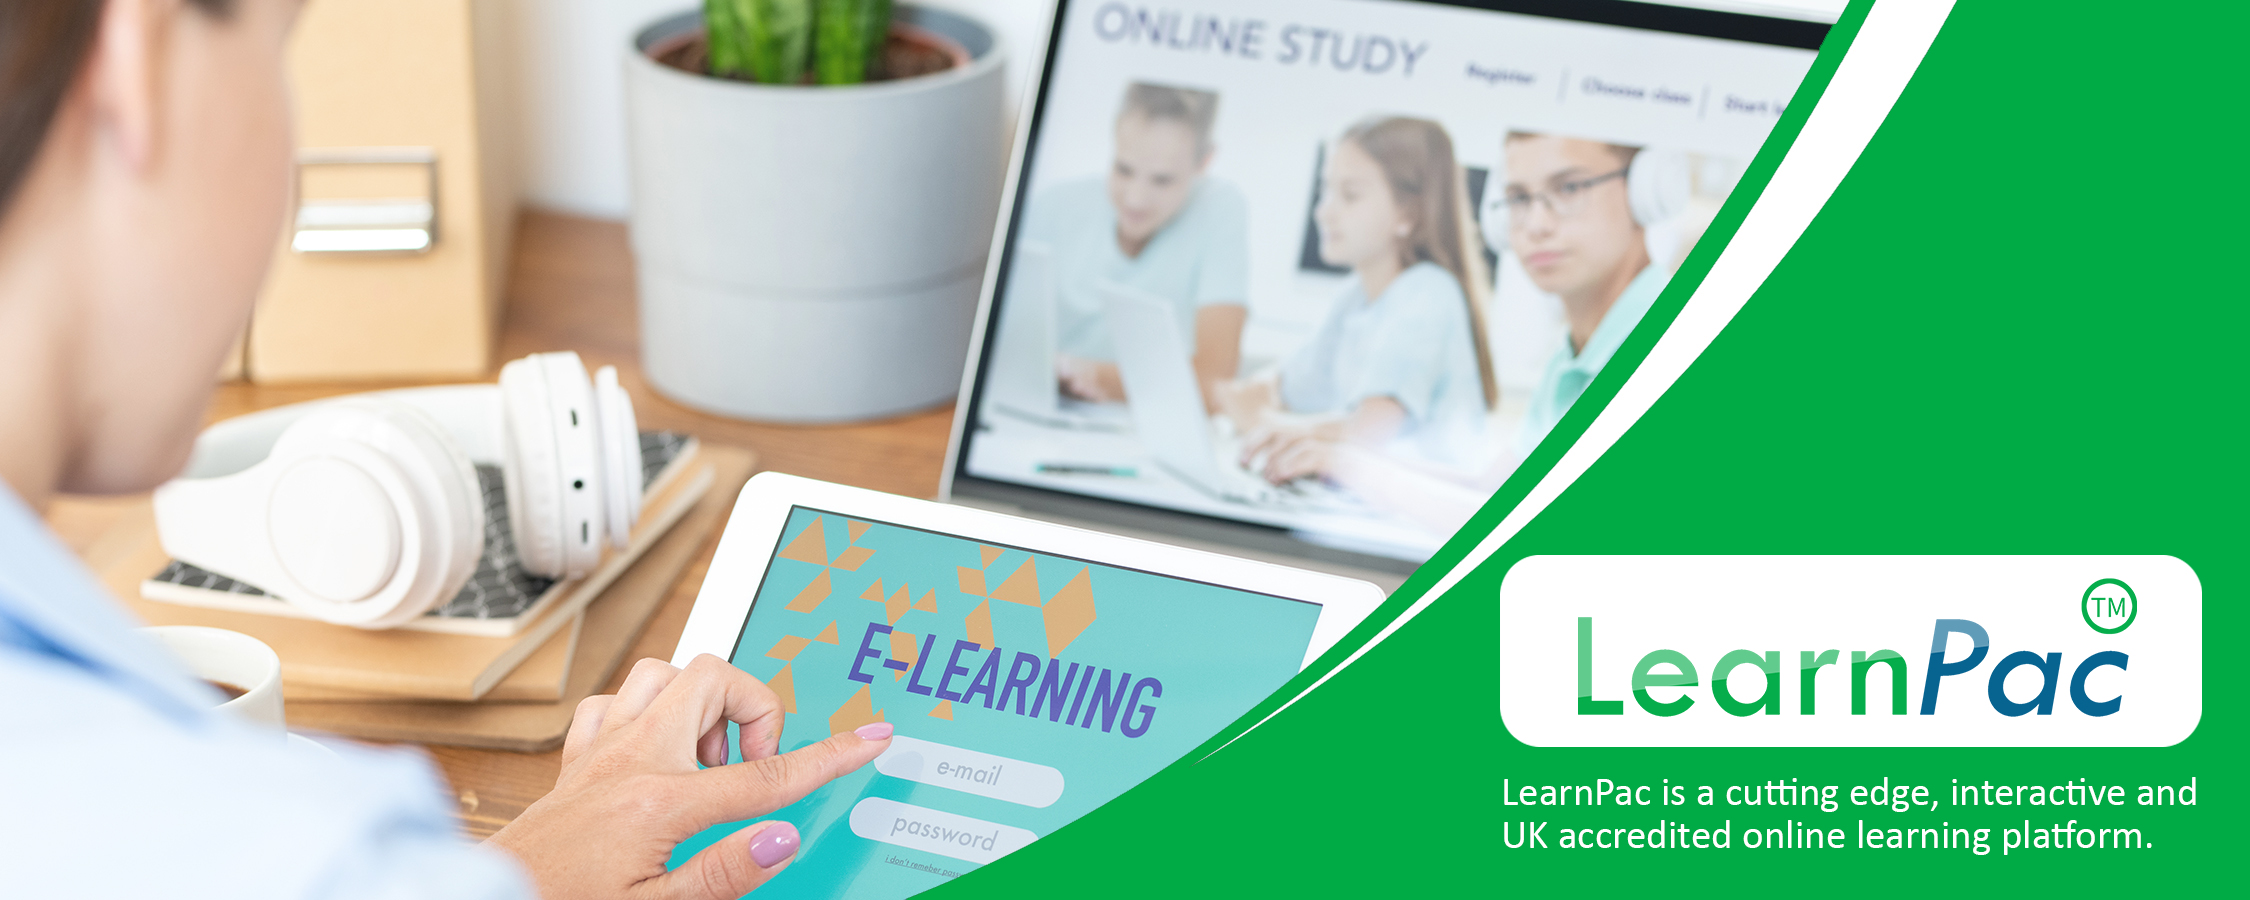 Care Certificate Standard 8 – Fluids and Nutrition - Online Learning Courses - E-Learning Courses - LearnPac Systems UK -